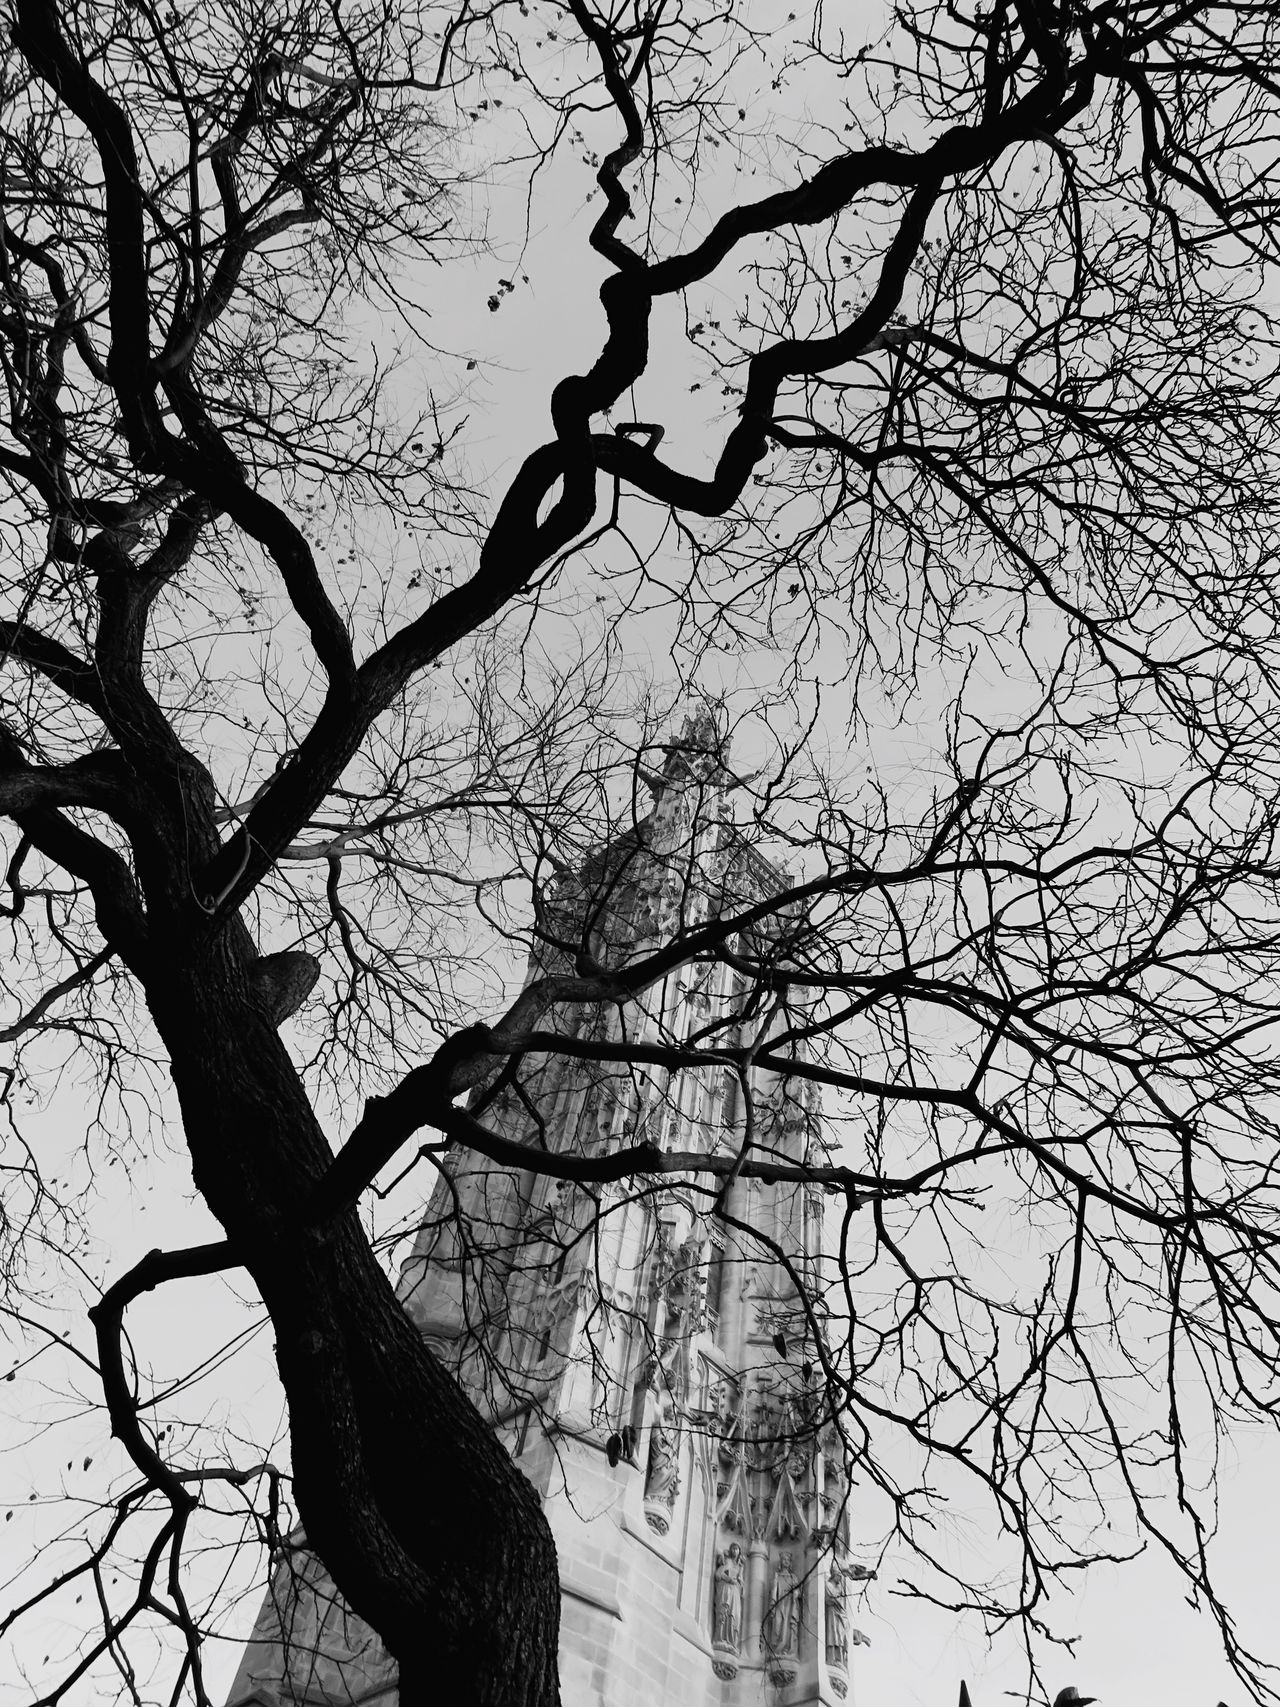 Tour Saint-Jacques Chatelet Paris Paris ❤ Paris, France  France Architecture Historical Building Historical Monuments Trees Tree TreePorn Tree Art Tree_collection  Blackandwhite Black And White Blackandwhite Photography Black And White Photography Taking Photos Streetphotography Hanging Out Showcase March